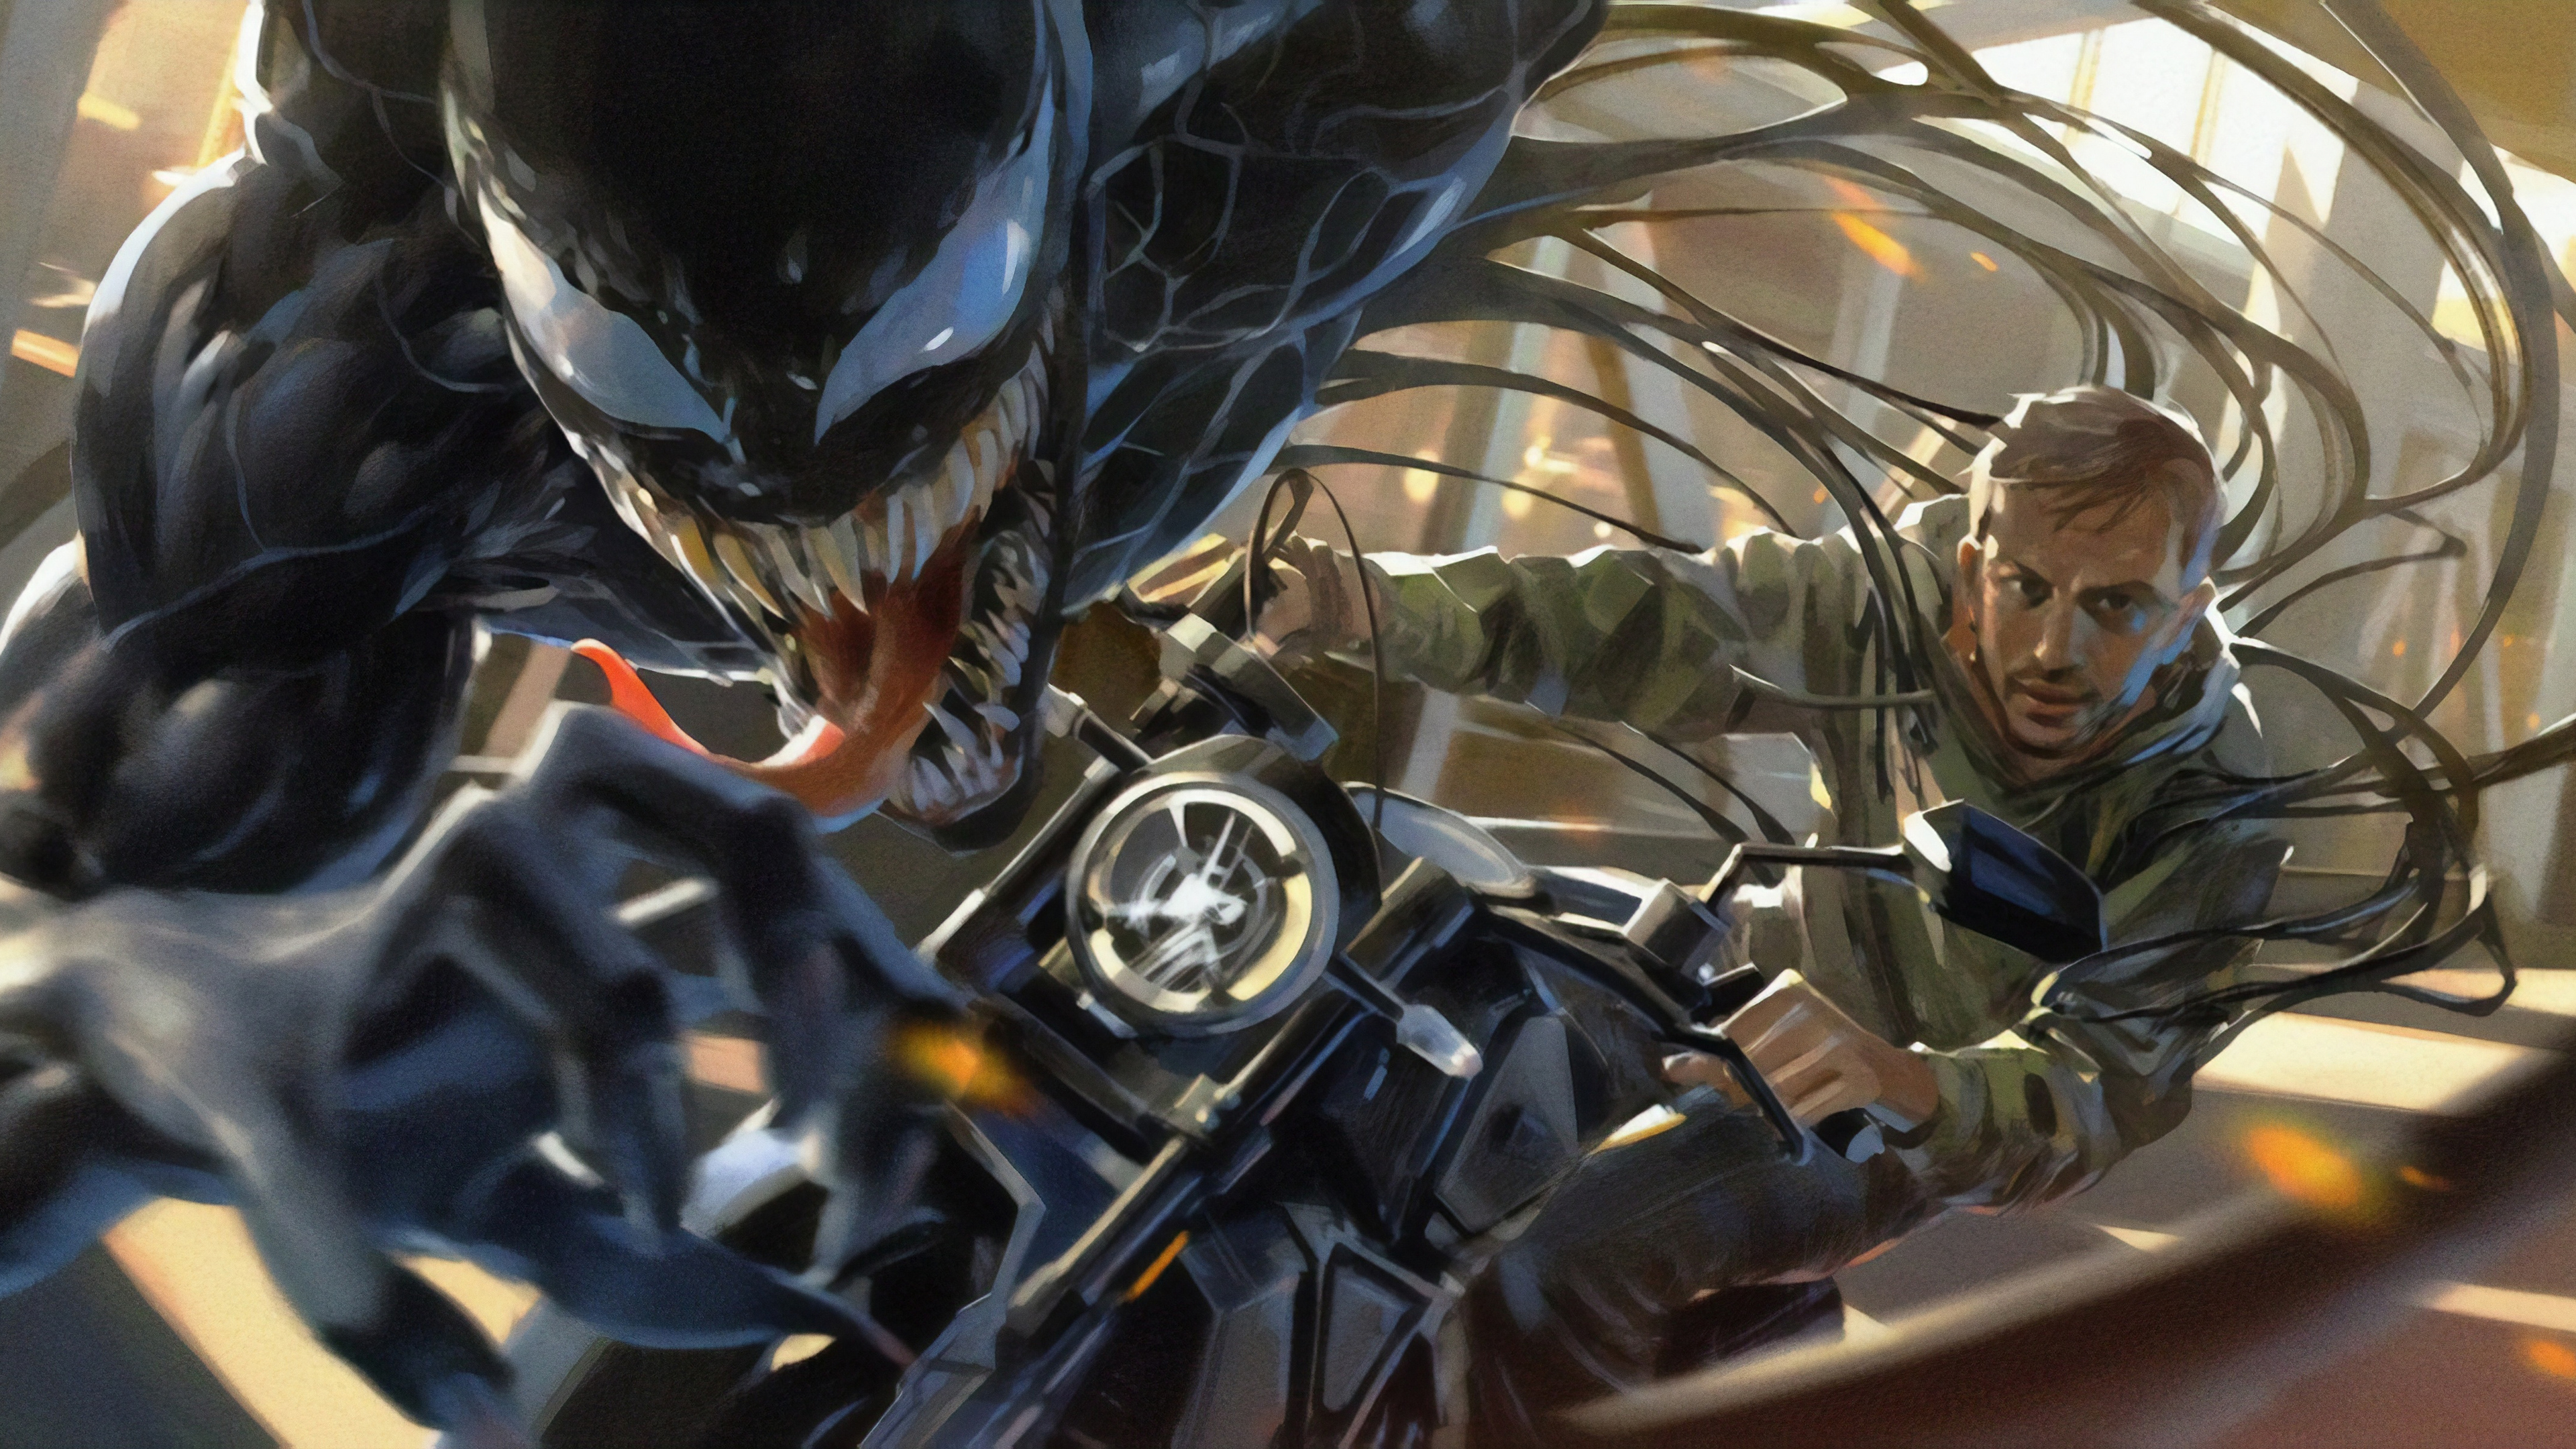 tom hardy as eddie brock in venom 4k 1543105171 - Tom Hardy As Eddie Brock In Venom 4k - Venom wallpapers, venom movie wallpapers, tom hardy wallpapers, movies wallpapers, hd-wallpapers, 4k-wallpapers, 2018-movies-wallpapers